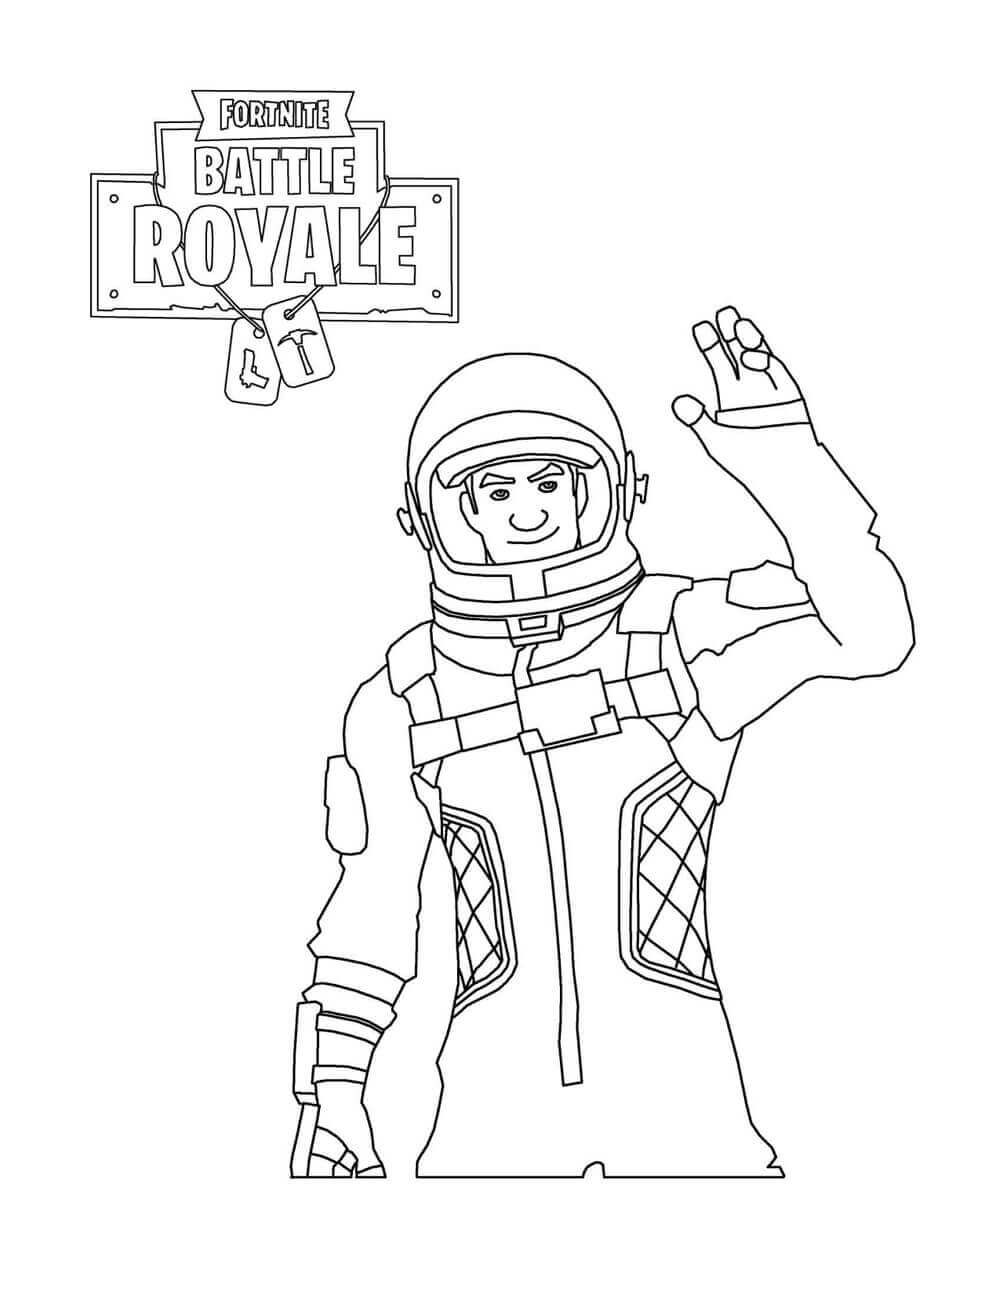 free printable fortnite coloring pages gaming pinwire fortnite coloring pages print and color printable fortnite pages coloring free